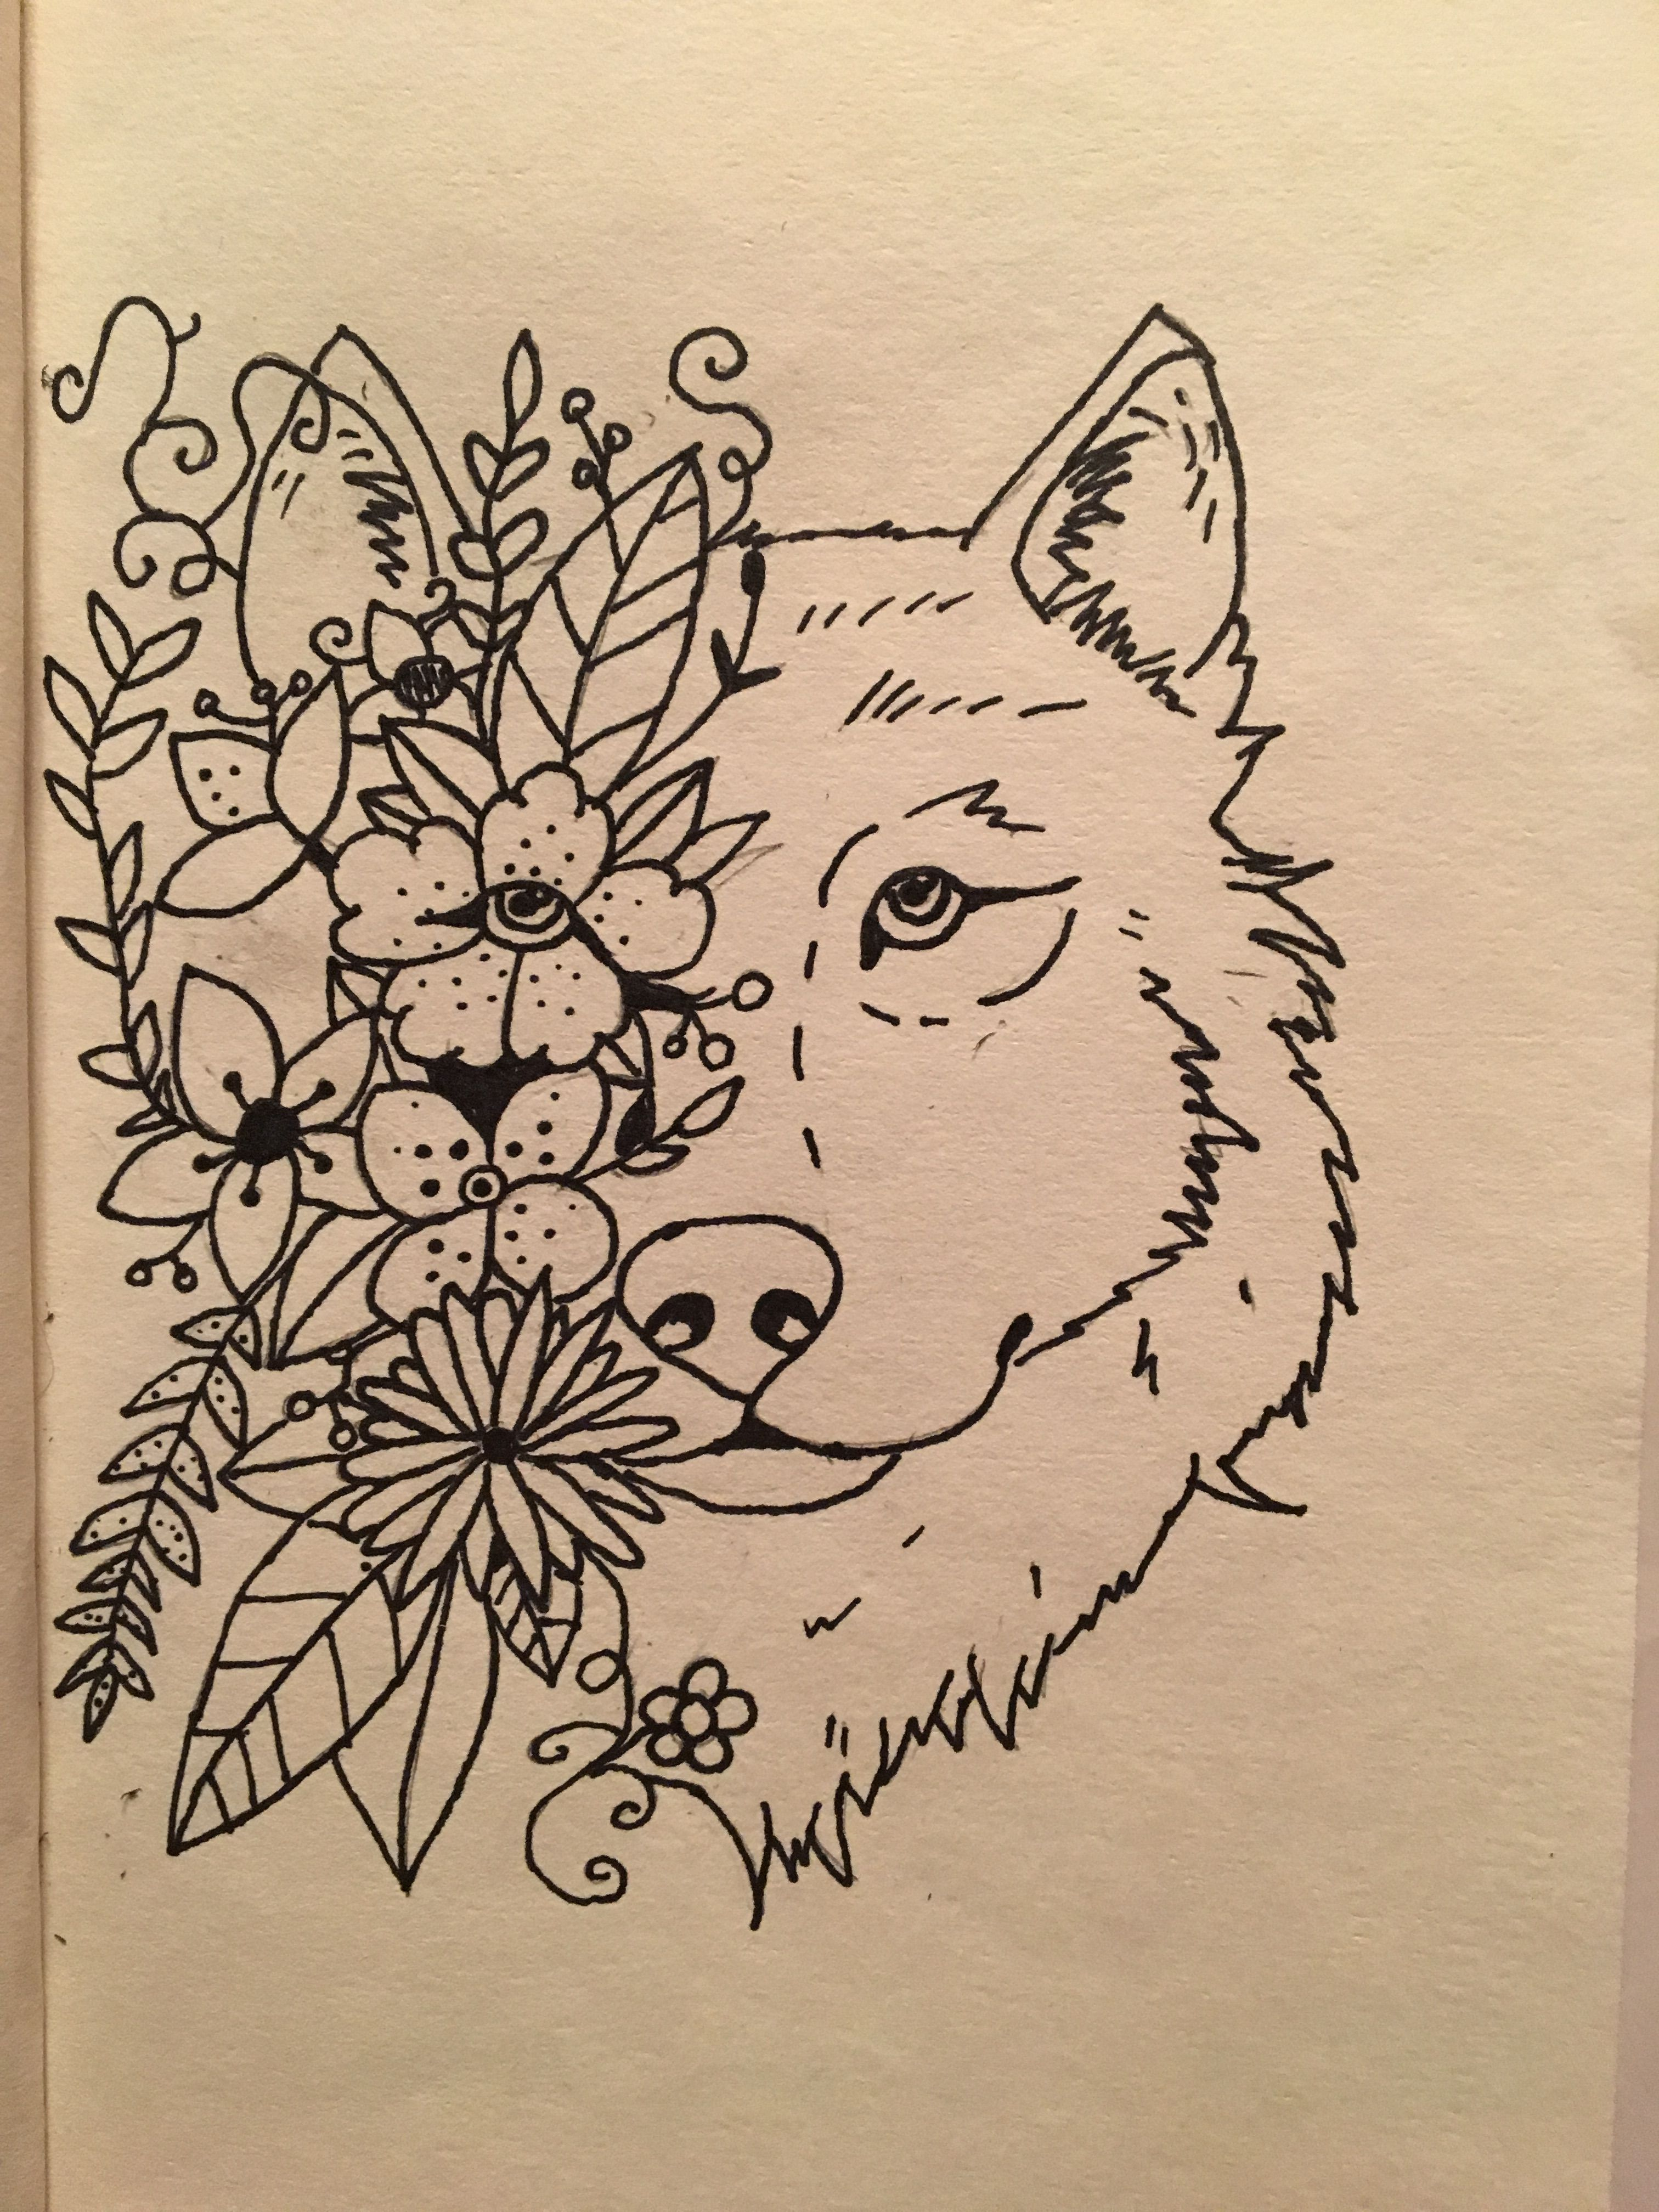 Sharpie drawing. Wolf head with flowers. Sharpie